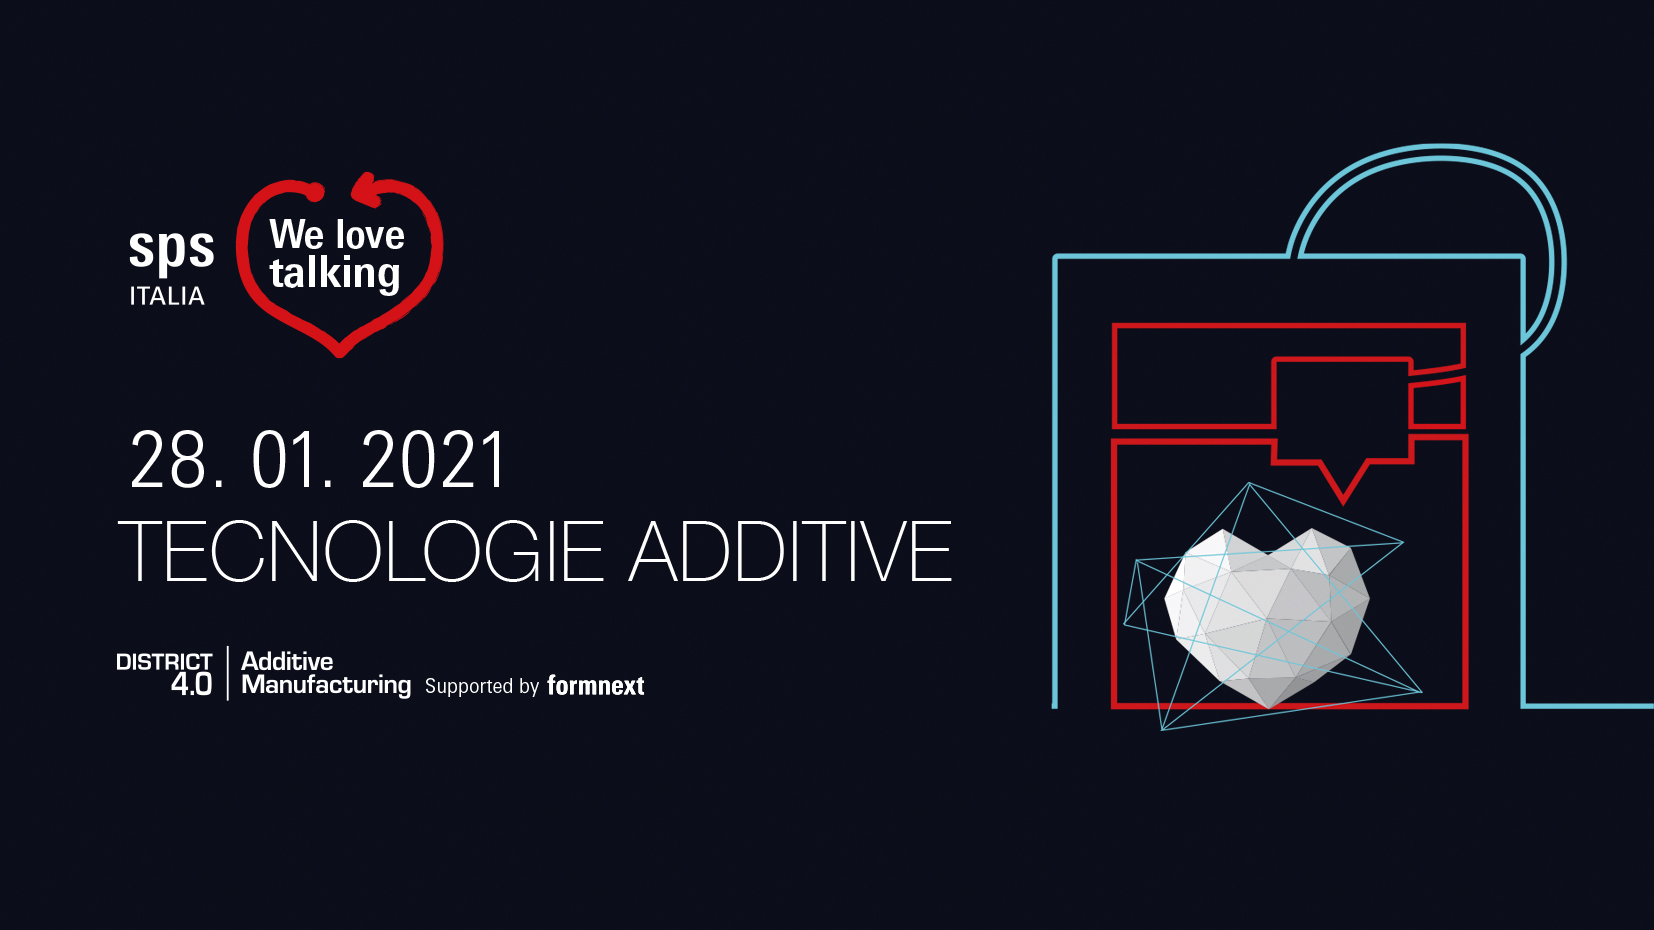 We Love Talking - Lo stato dell'arte delle tecnologie additive per il digital manufacturing. Uno studio di settore